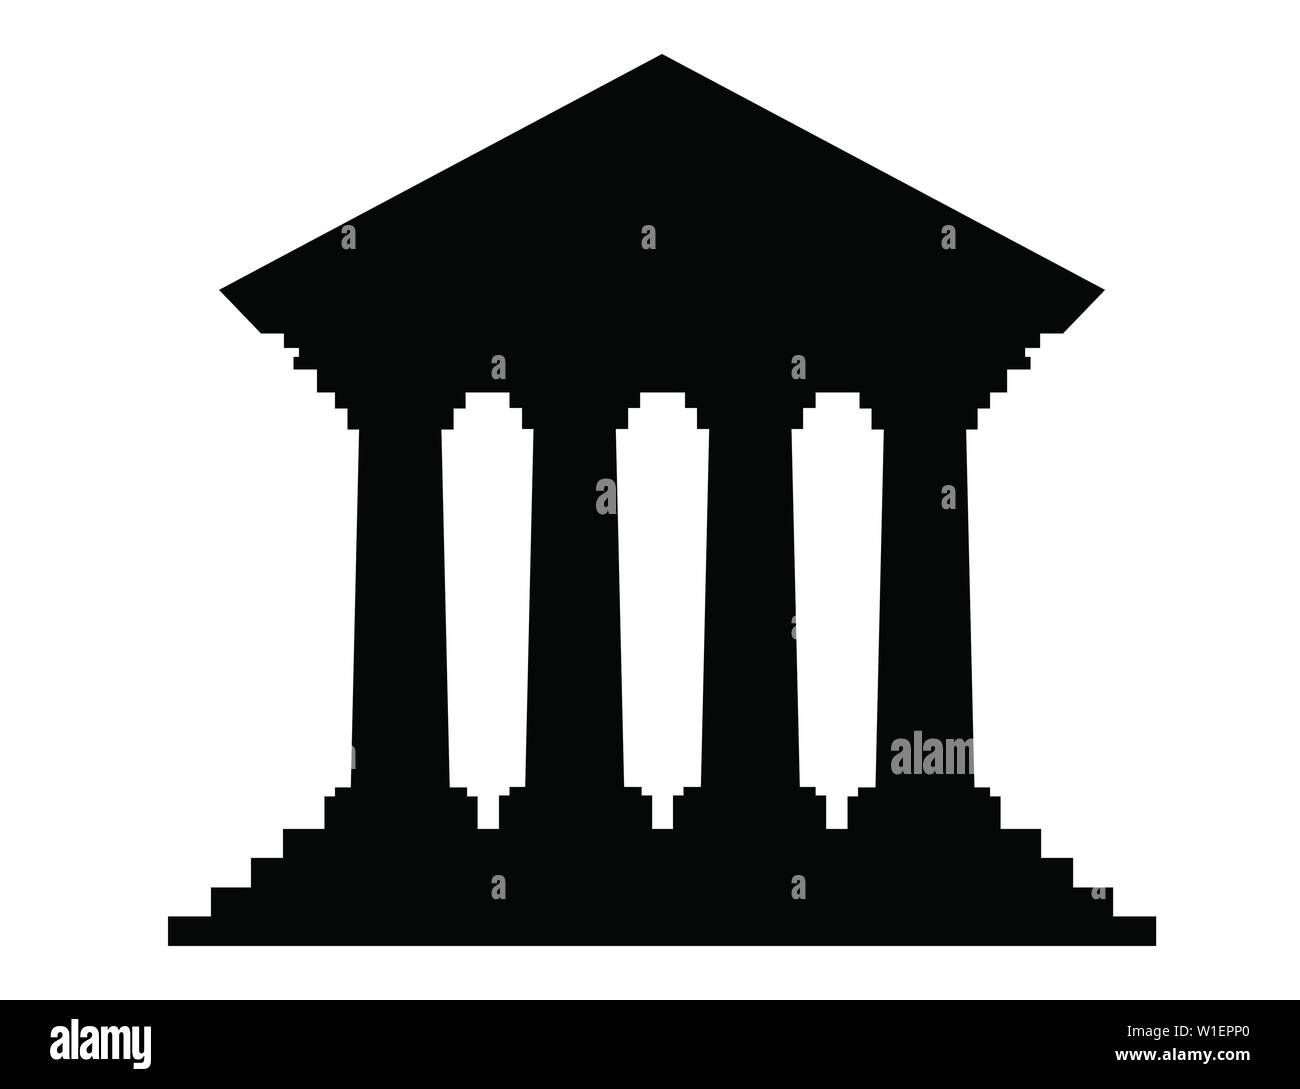 Retro Bank Design.Black Silhouette Flat Design Retro Bank Building With Columns